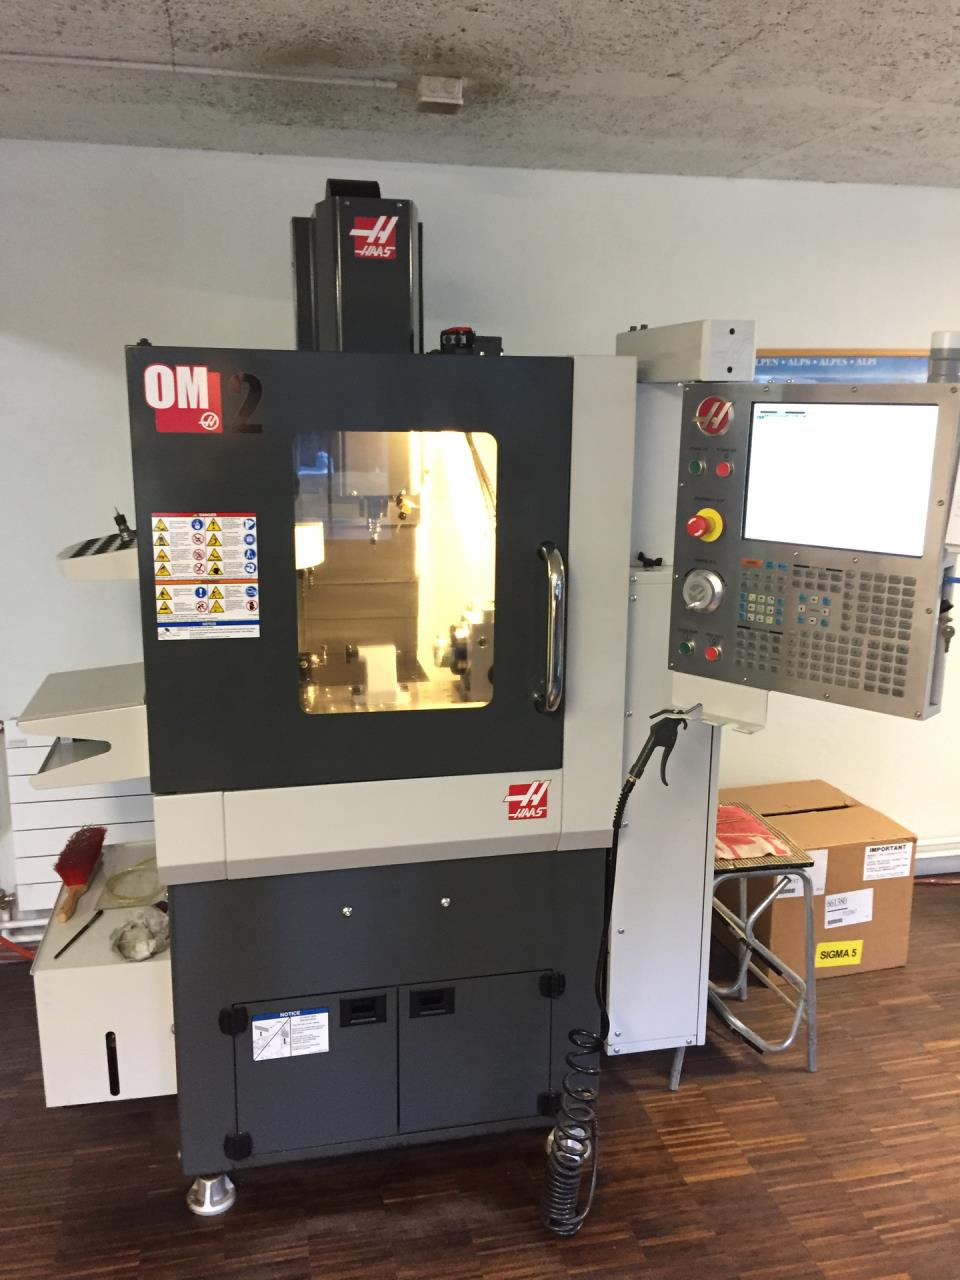 CNC-High speed milling machine HAAS OM-2A